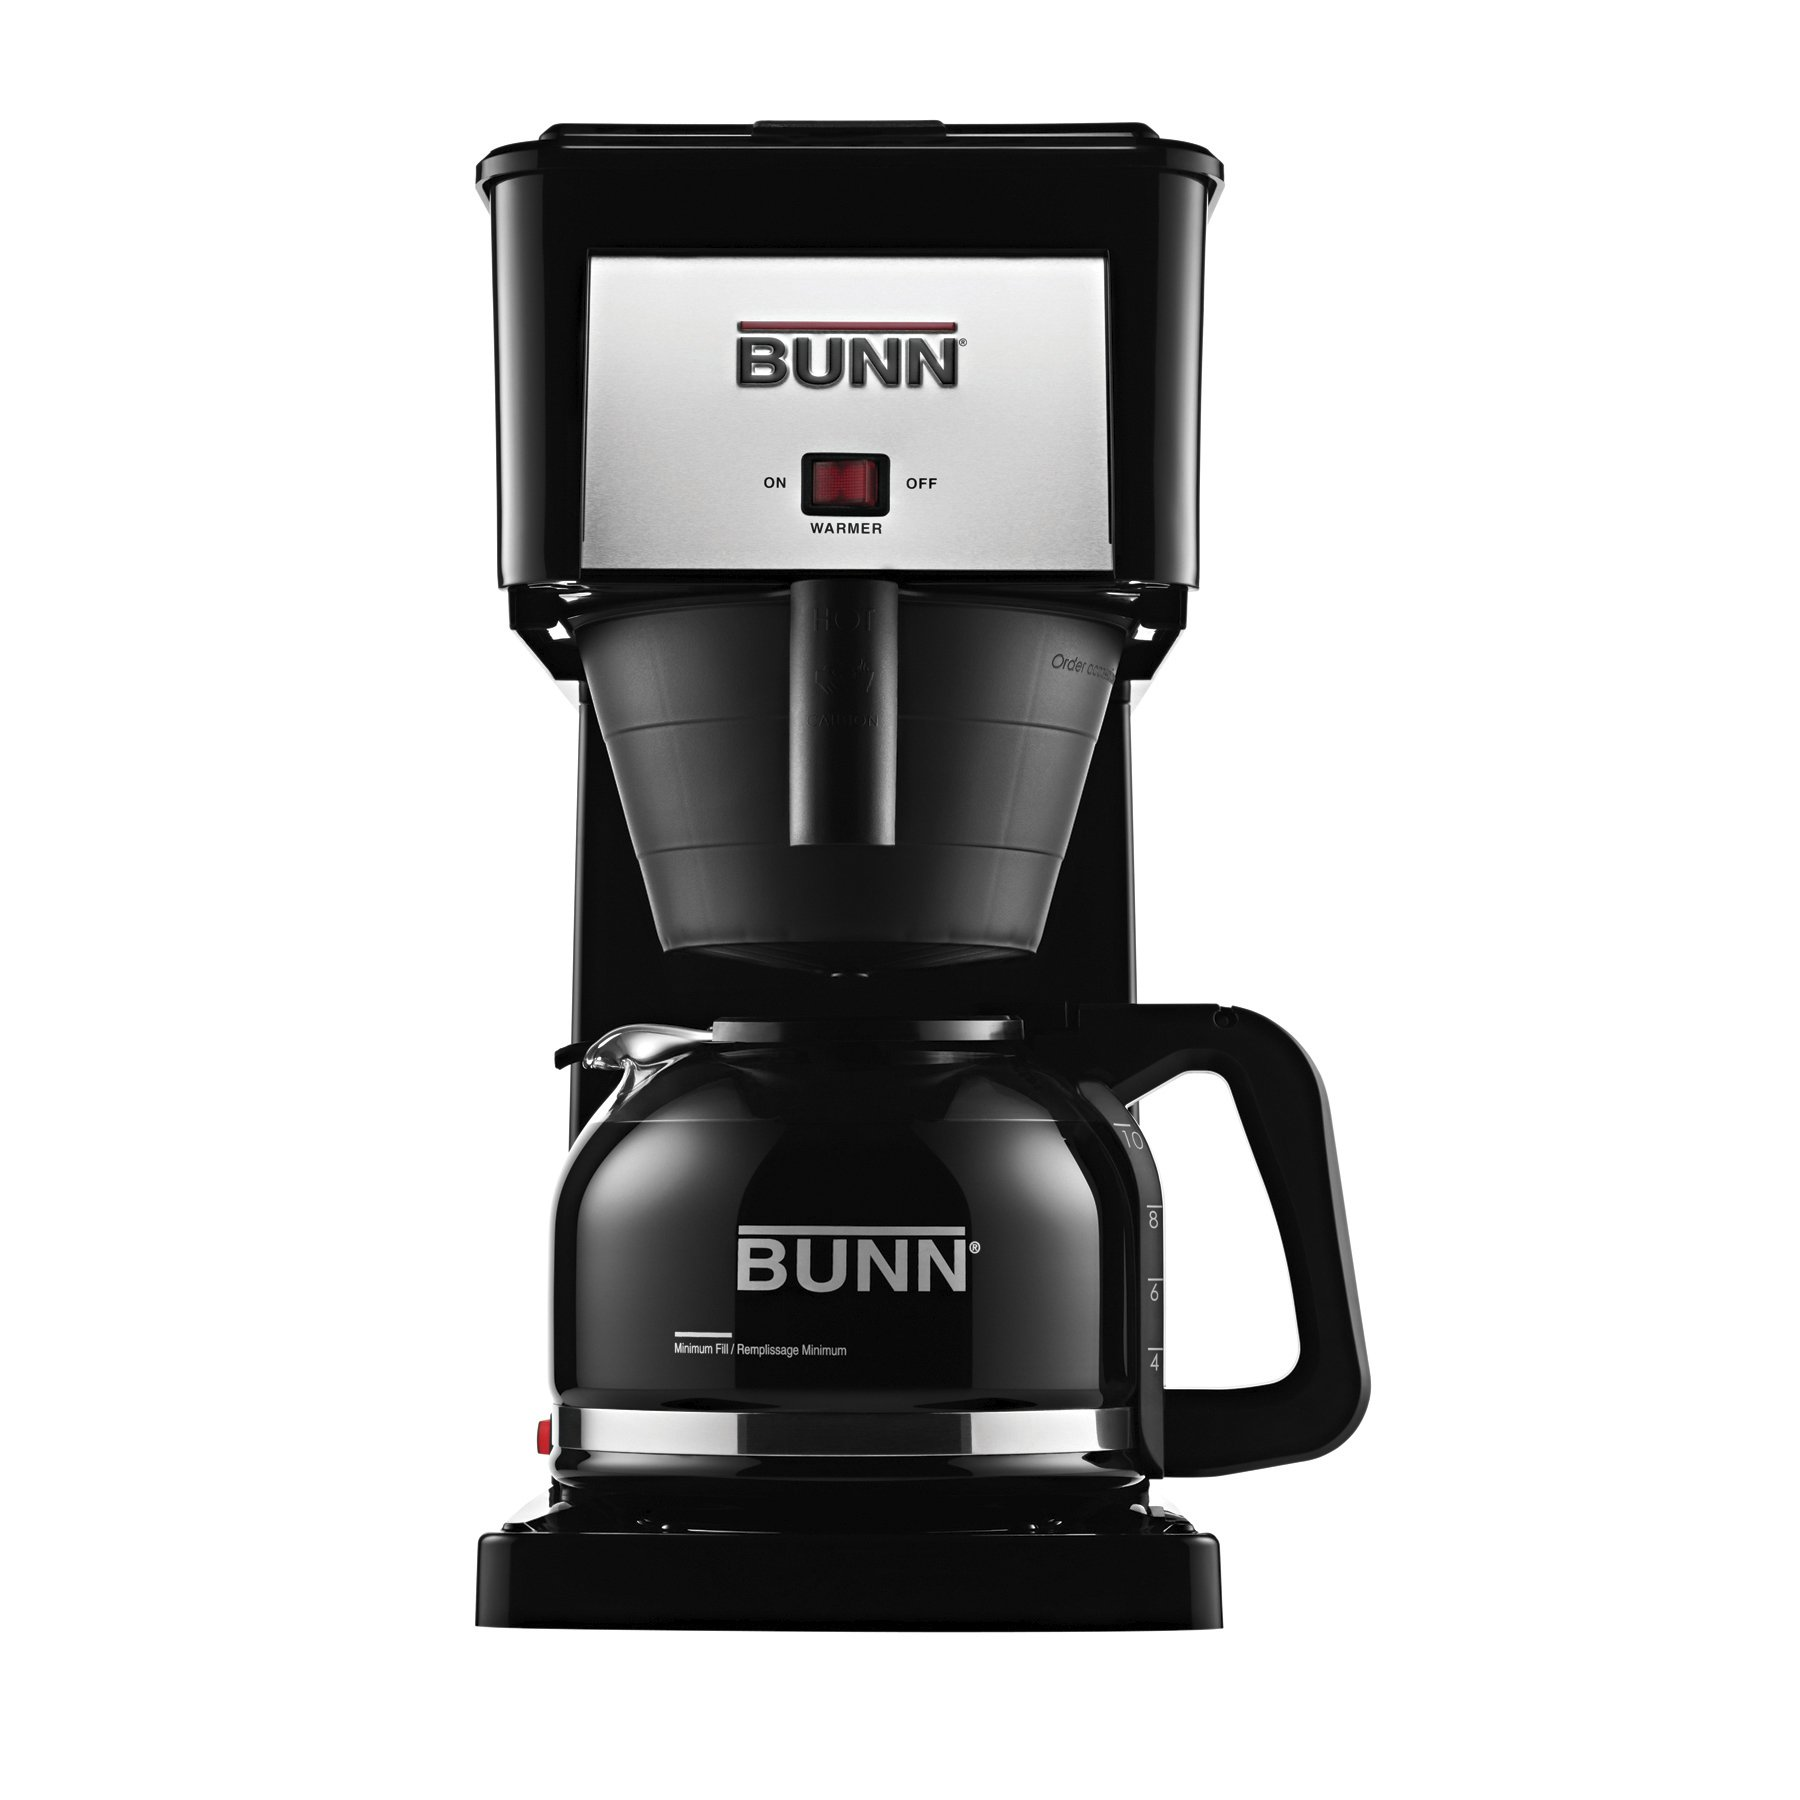 BUNN GRB Velocity Brew 10-Cup Home Coffee Brewer, Black by BUNN